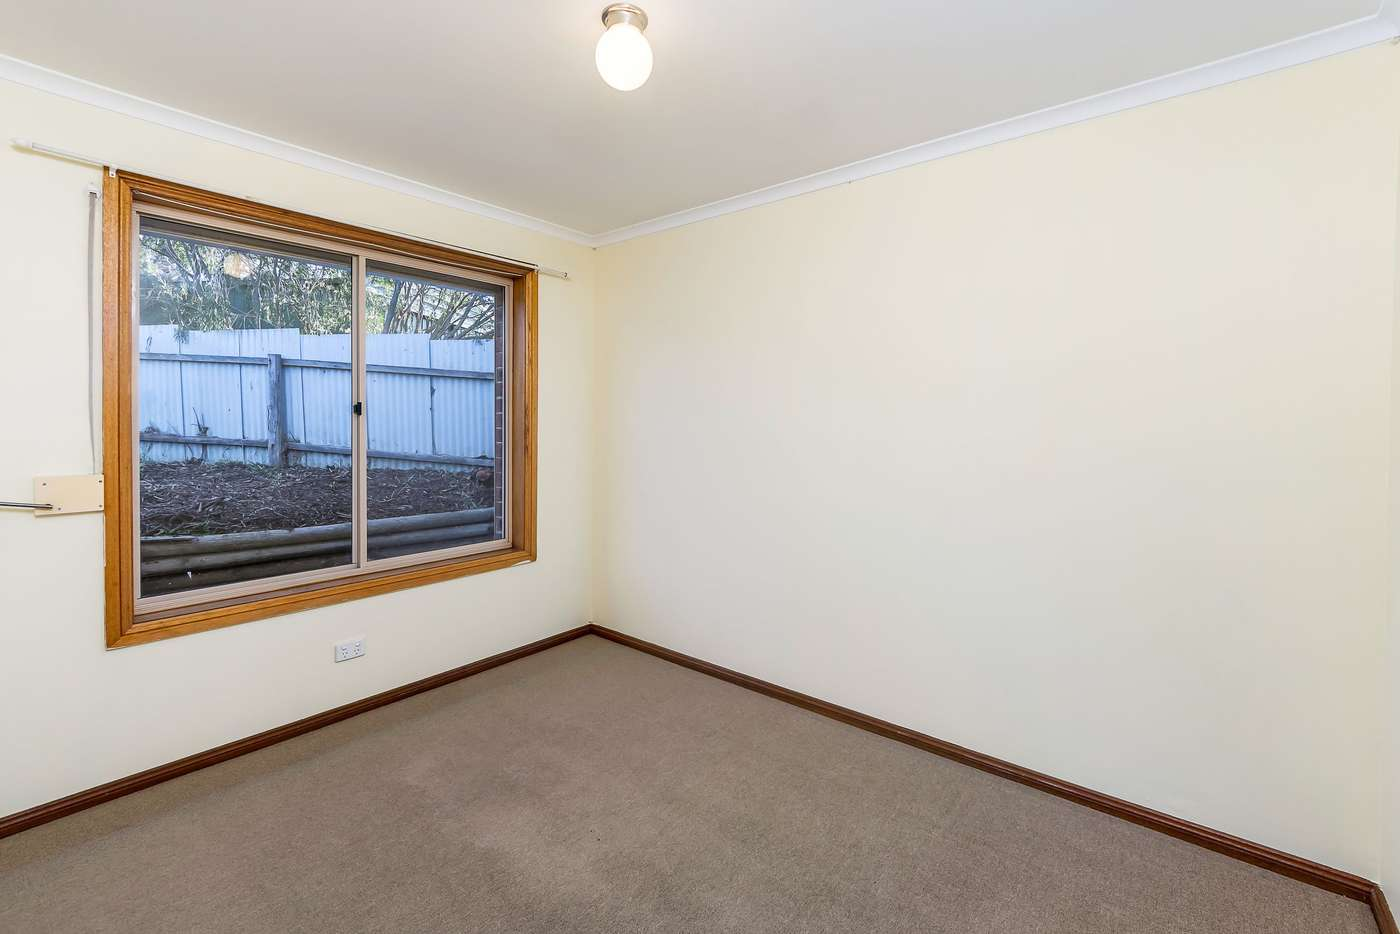 Seventh view of Homely house listing, 6 Hillier Road, Nairne SA 5252